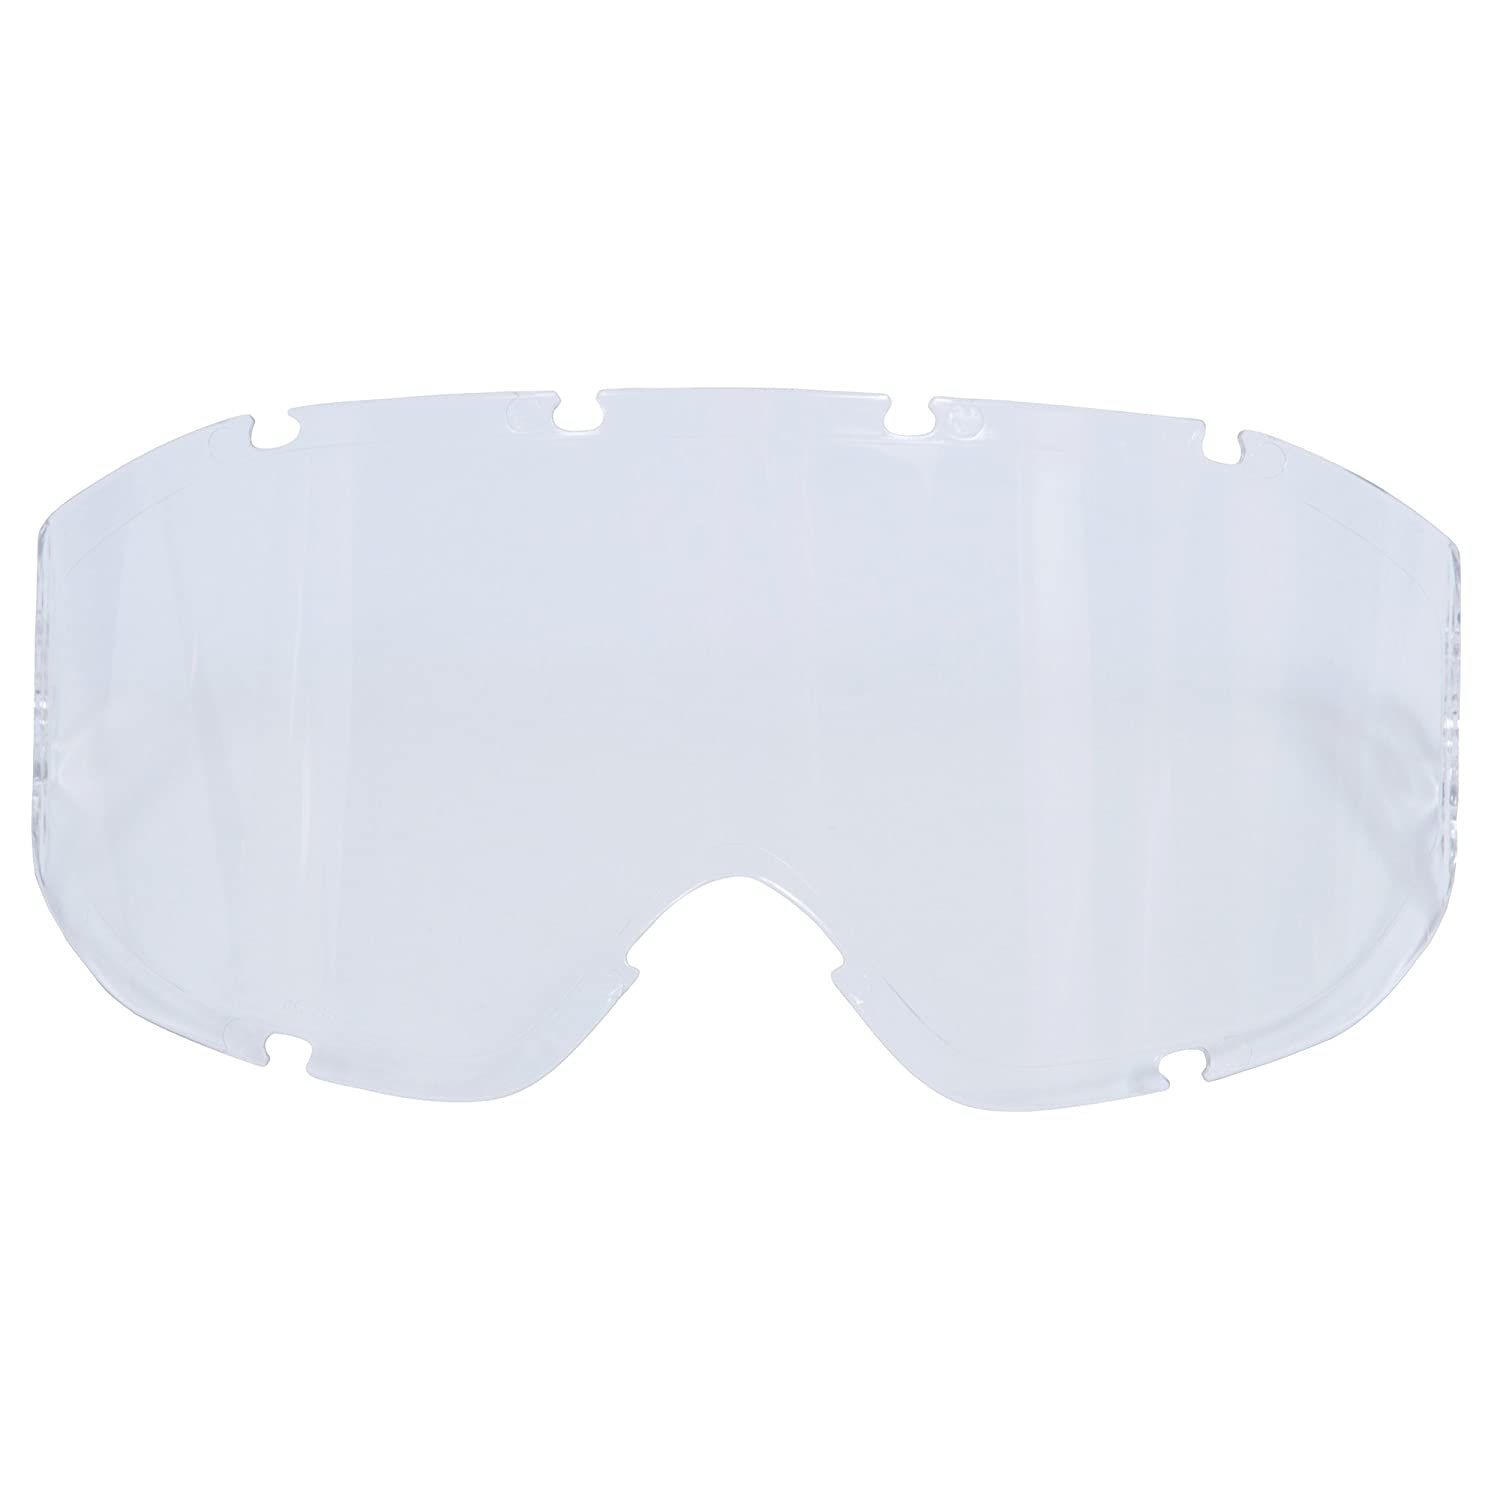 Jackson Safety 16679 V80 MRXV Safety Goggles, Clear Anti-Fog Lens with Black Frame (Pack of 36) by Jackson Safety B008D80ZNS